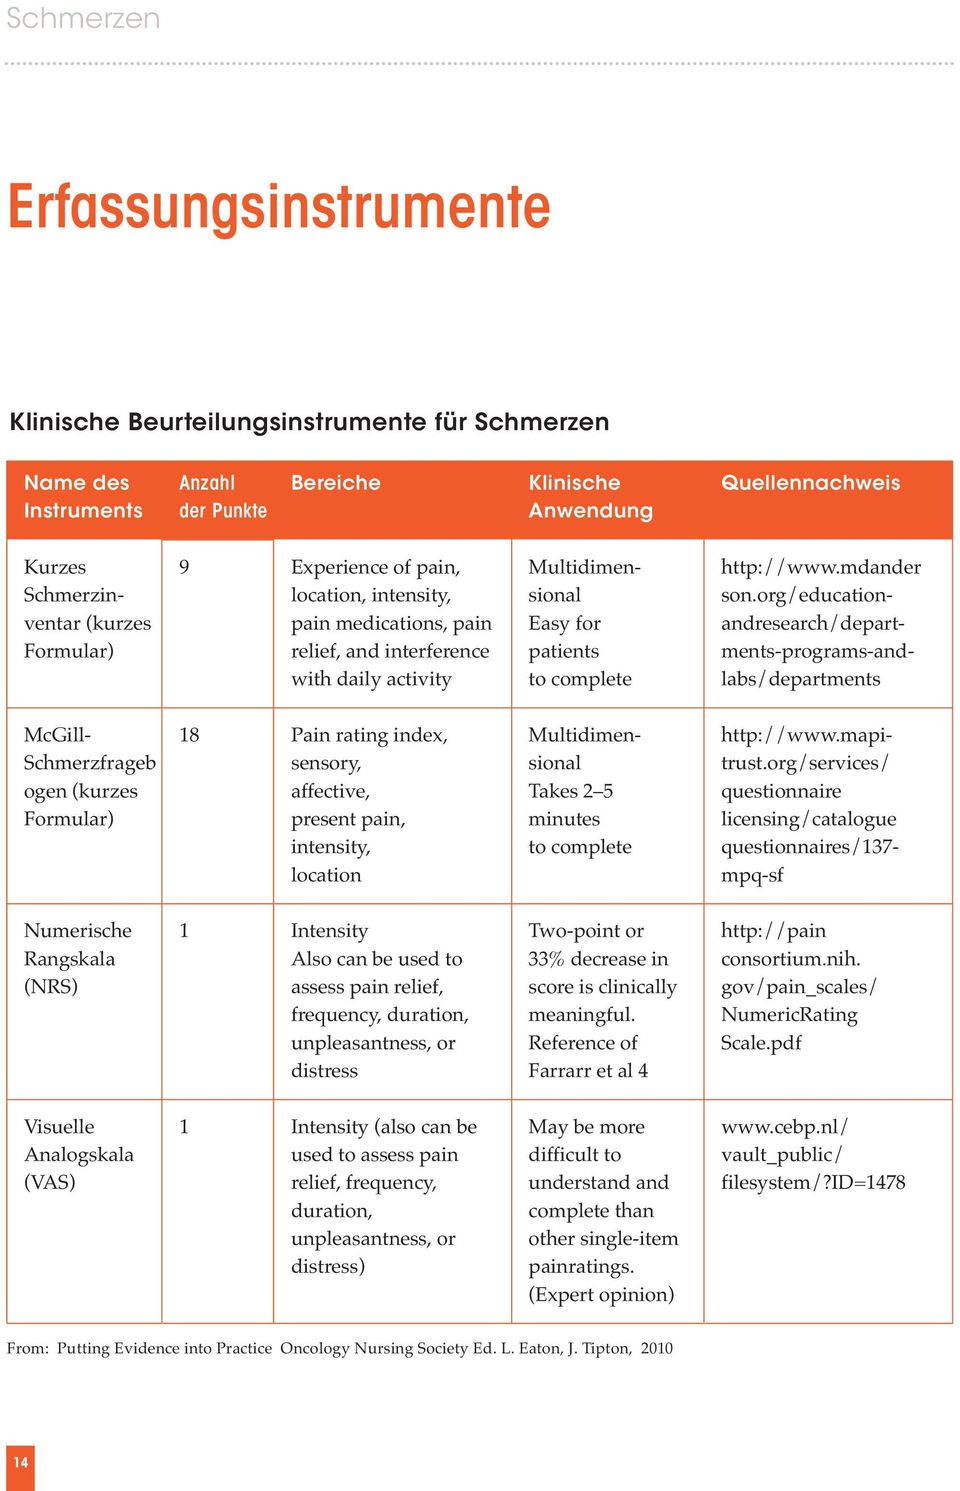 org/educationandresearch/departments-programs-andlabs/departments McGill- Schmerzfrageb ogen (kurzes Formular) 18 Pain rating index, sensory, affective, present pain, intensity, location